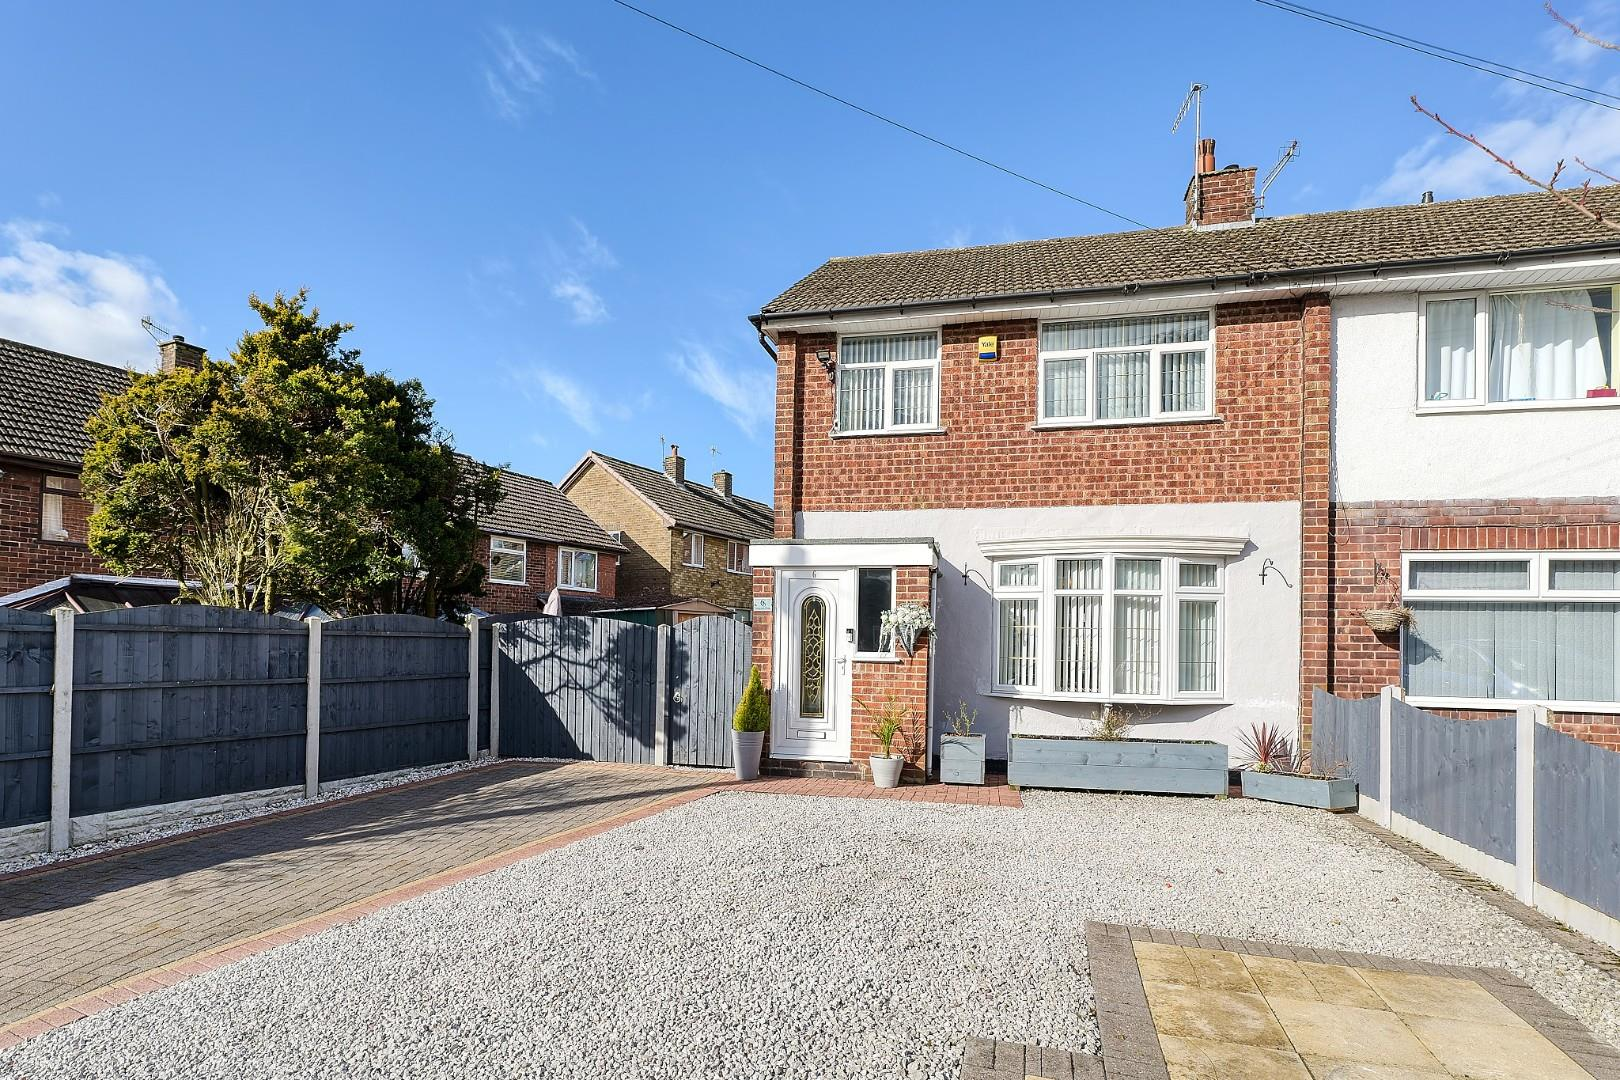 3 bed semi-detached house for sale in Longview Close, Stoke-On-Trent, ST3